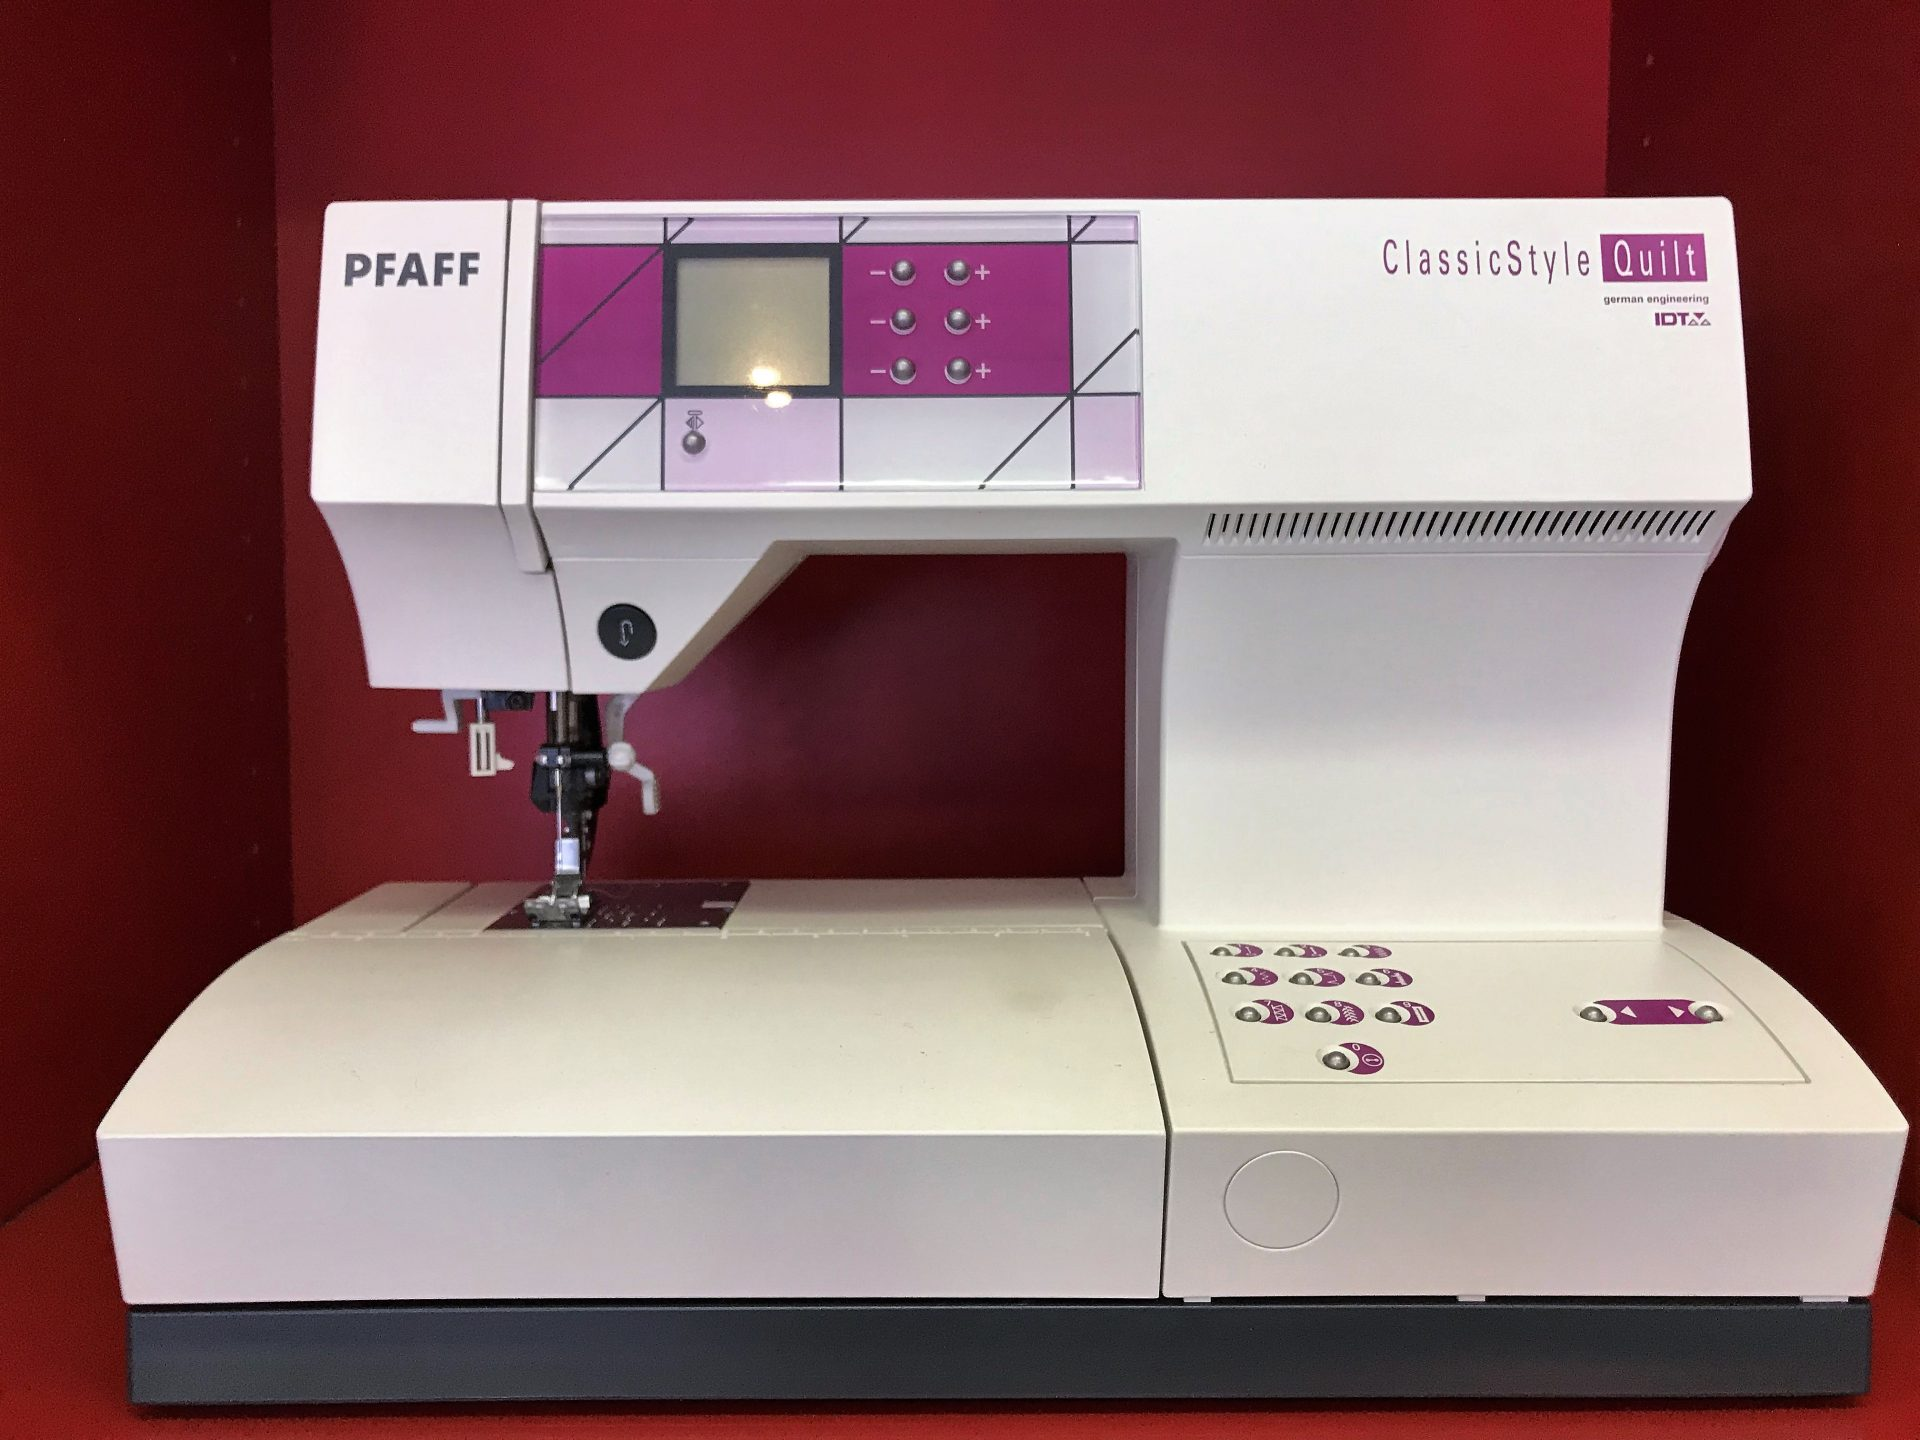 PFAFF ClassicStyle Quilt 2027 - 415 €